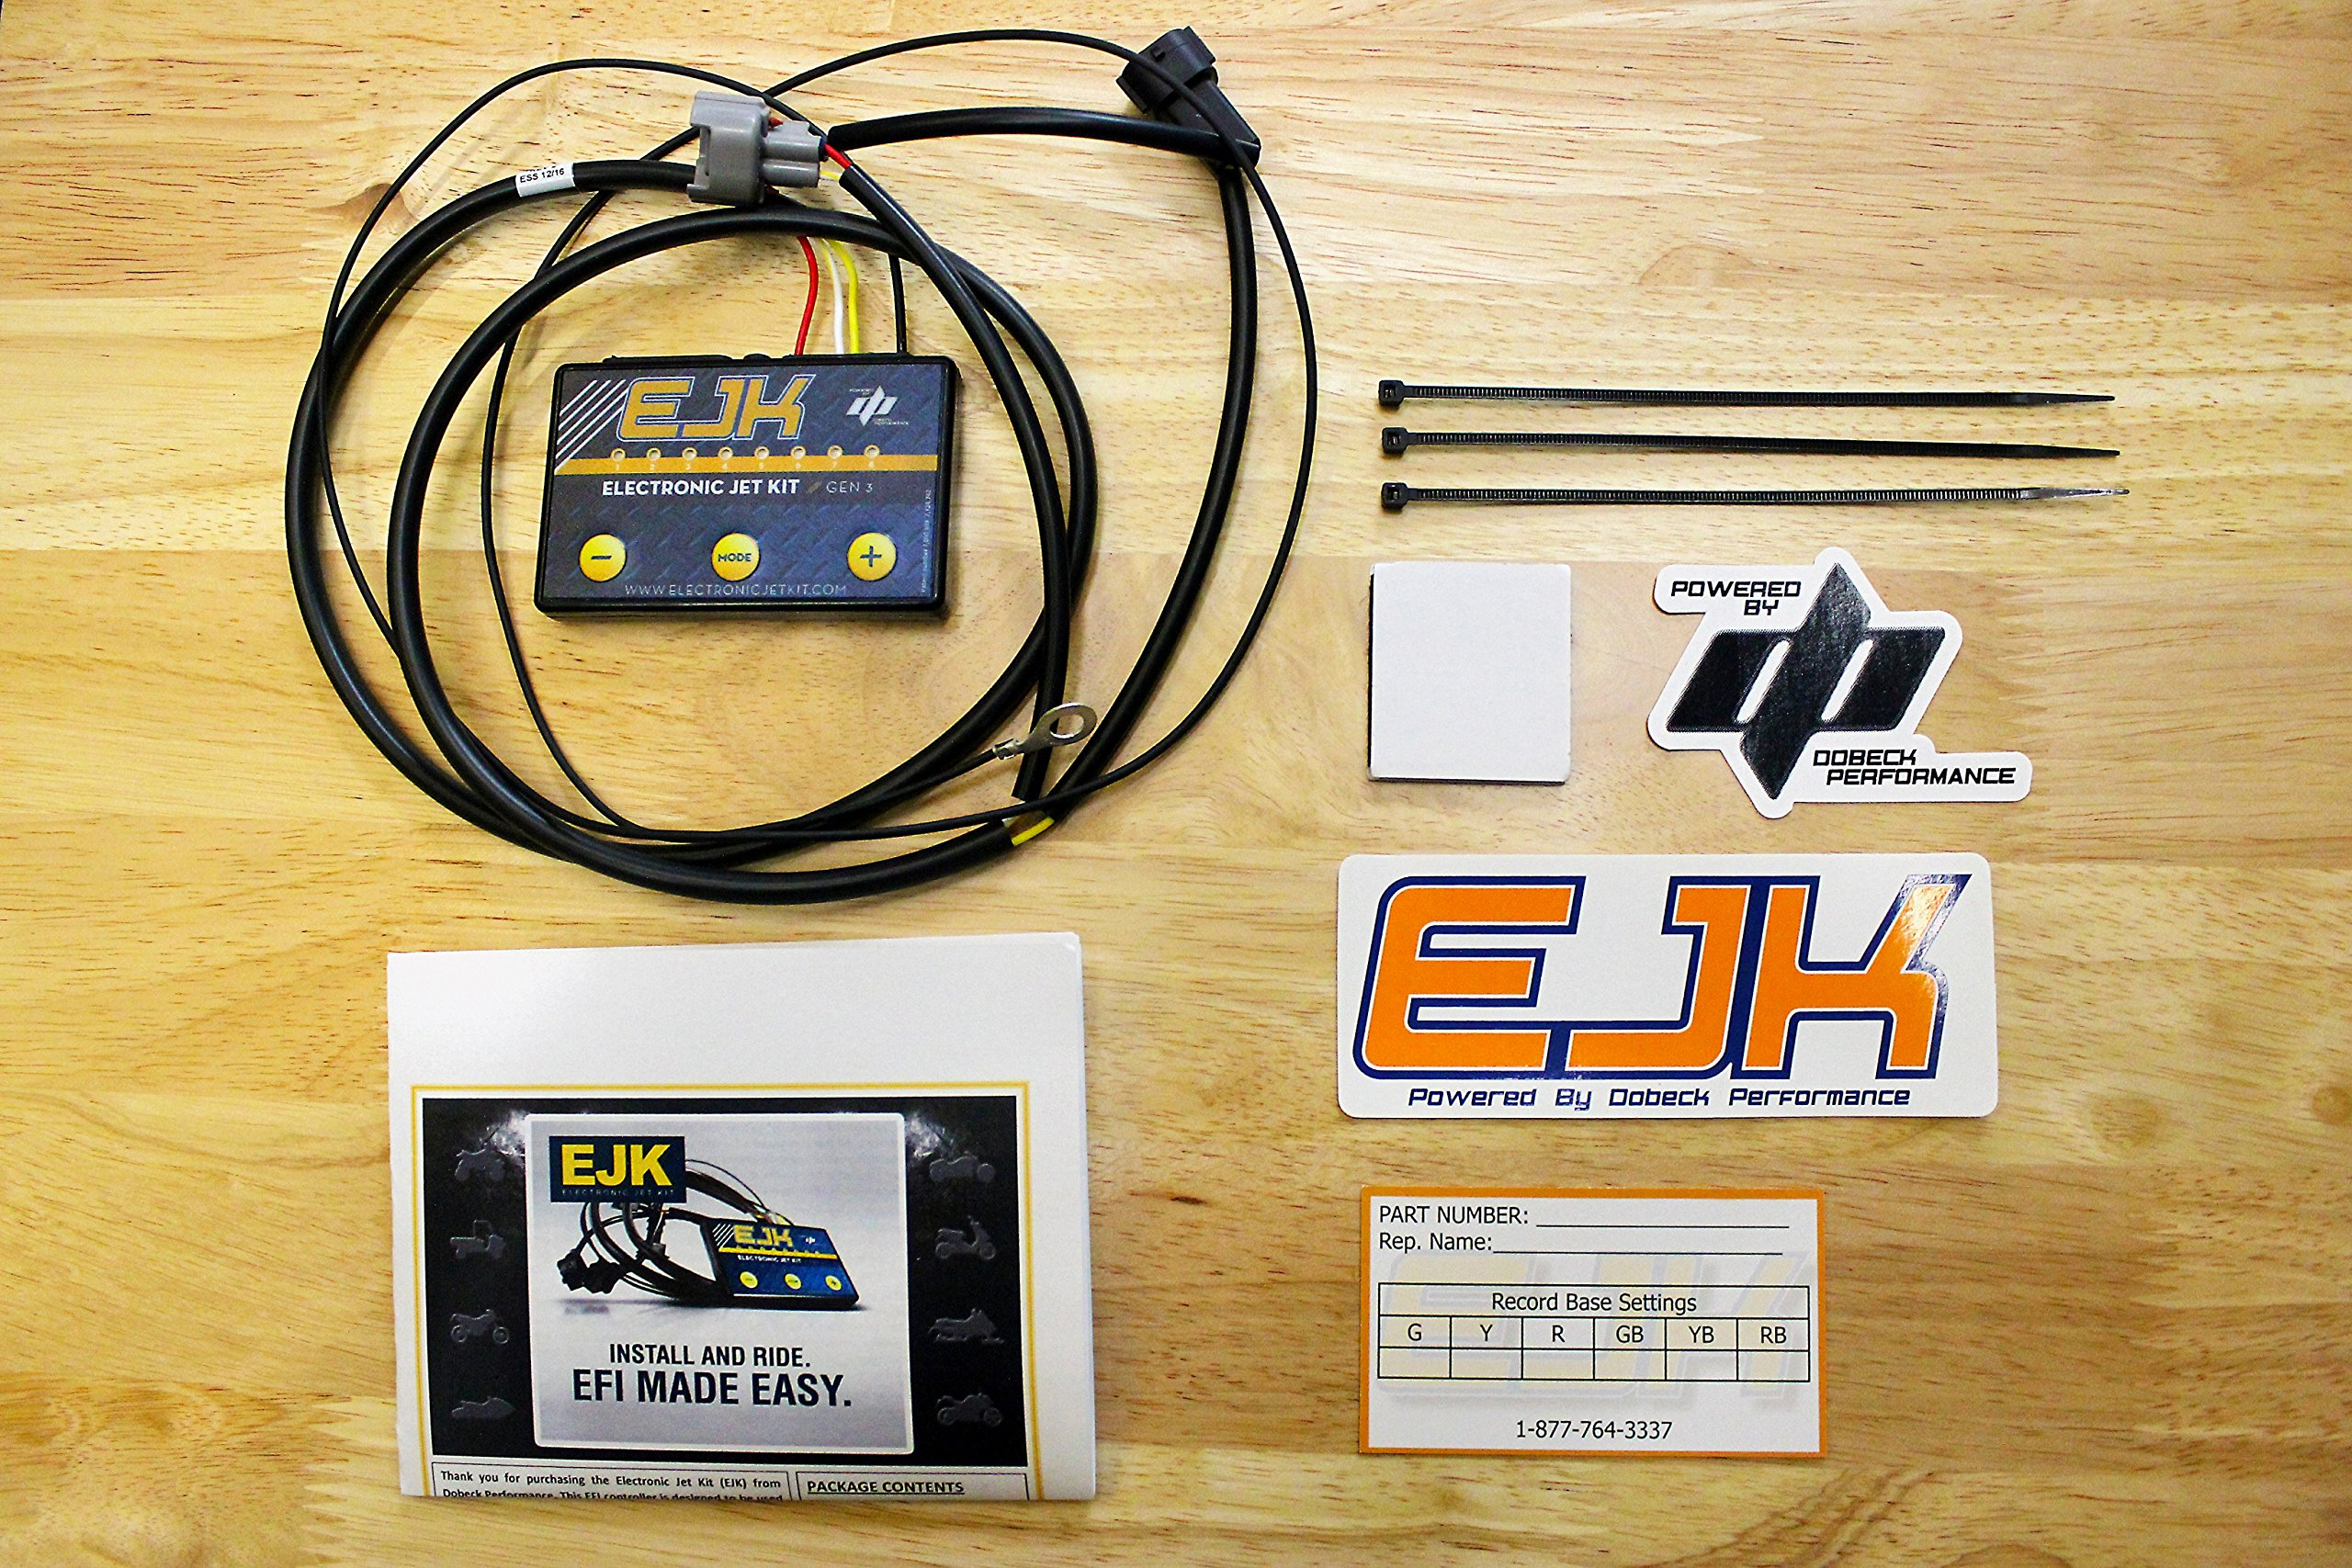 Polaris RZR Ranger 800 Fuel Injection Programmer 2011-2014 EJK 8320056 by Dobeck Performance